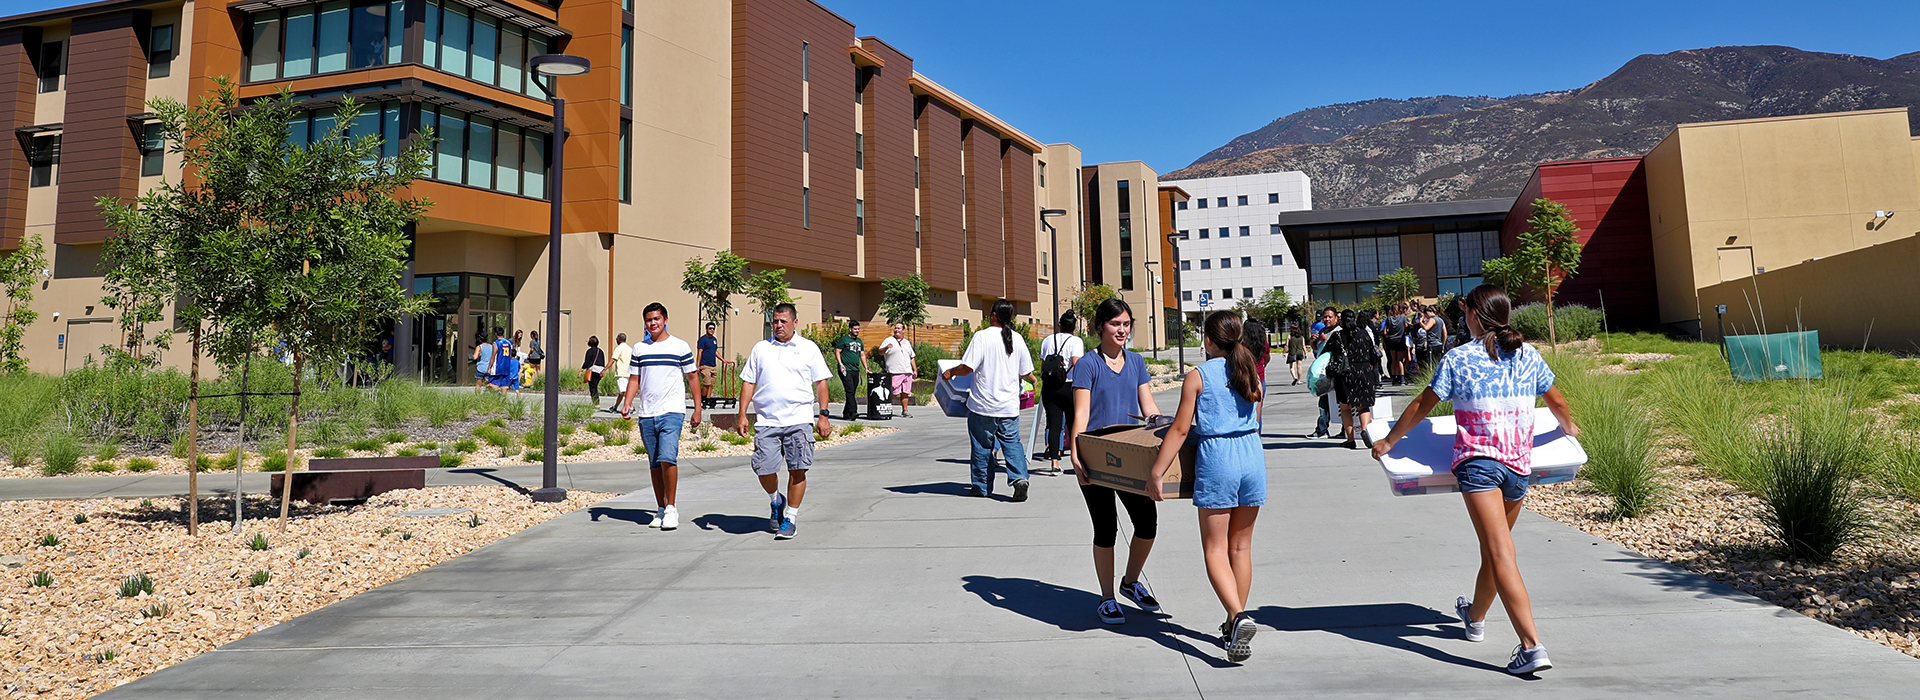 CSUSB launches new school year with students moving into campus